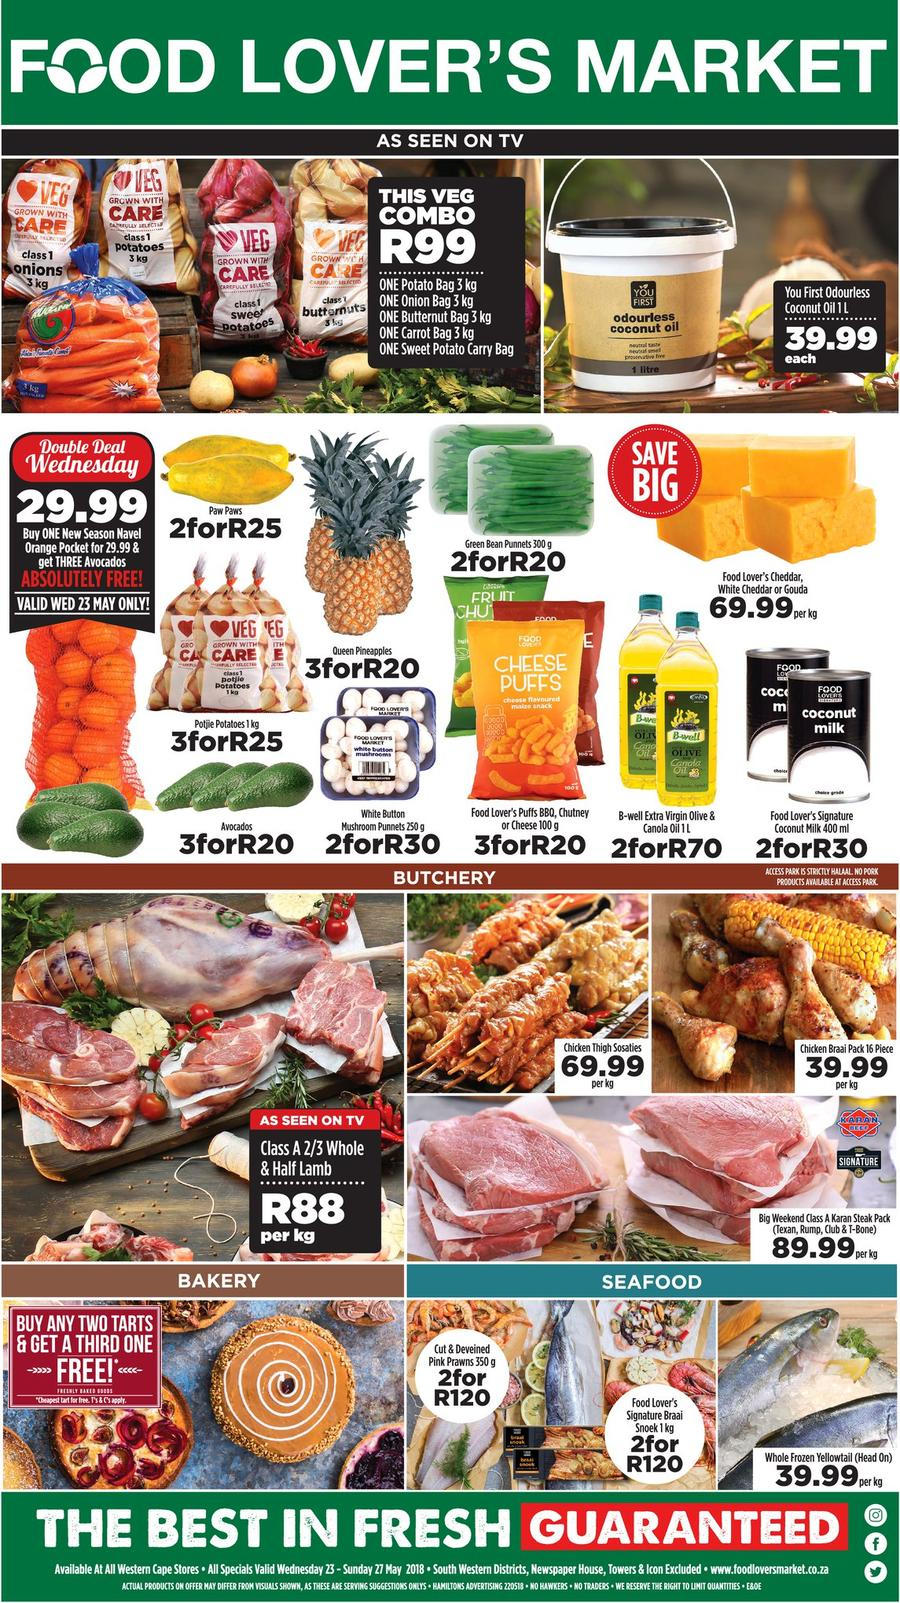 Food lovers market 23 may 27 may 2018 guzzle food lovers market 23 may 27 may 2018 page 1 forumfinder Images